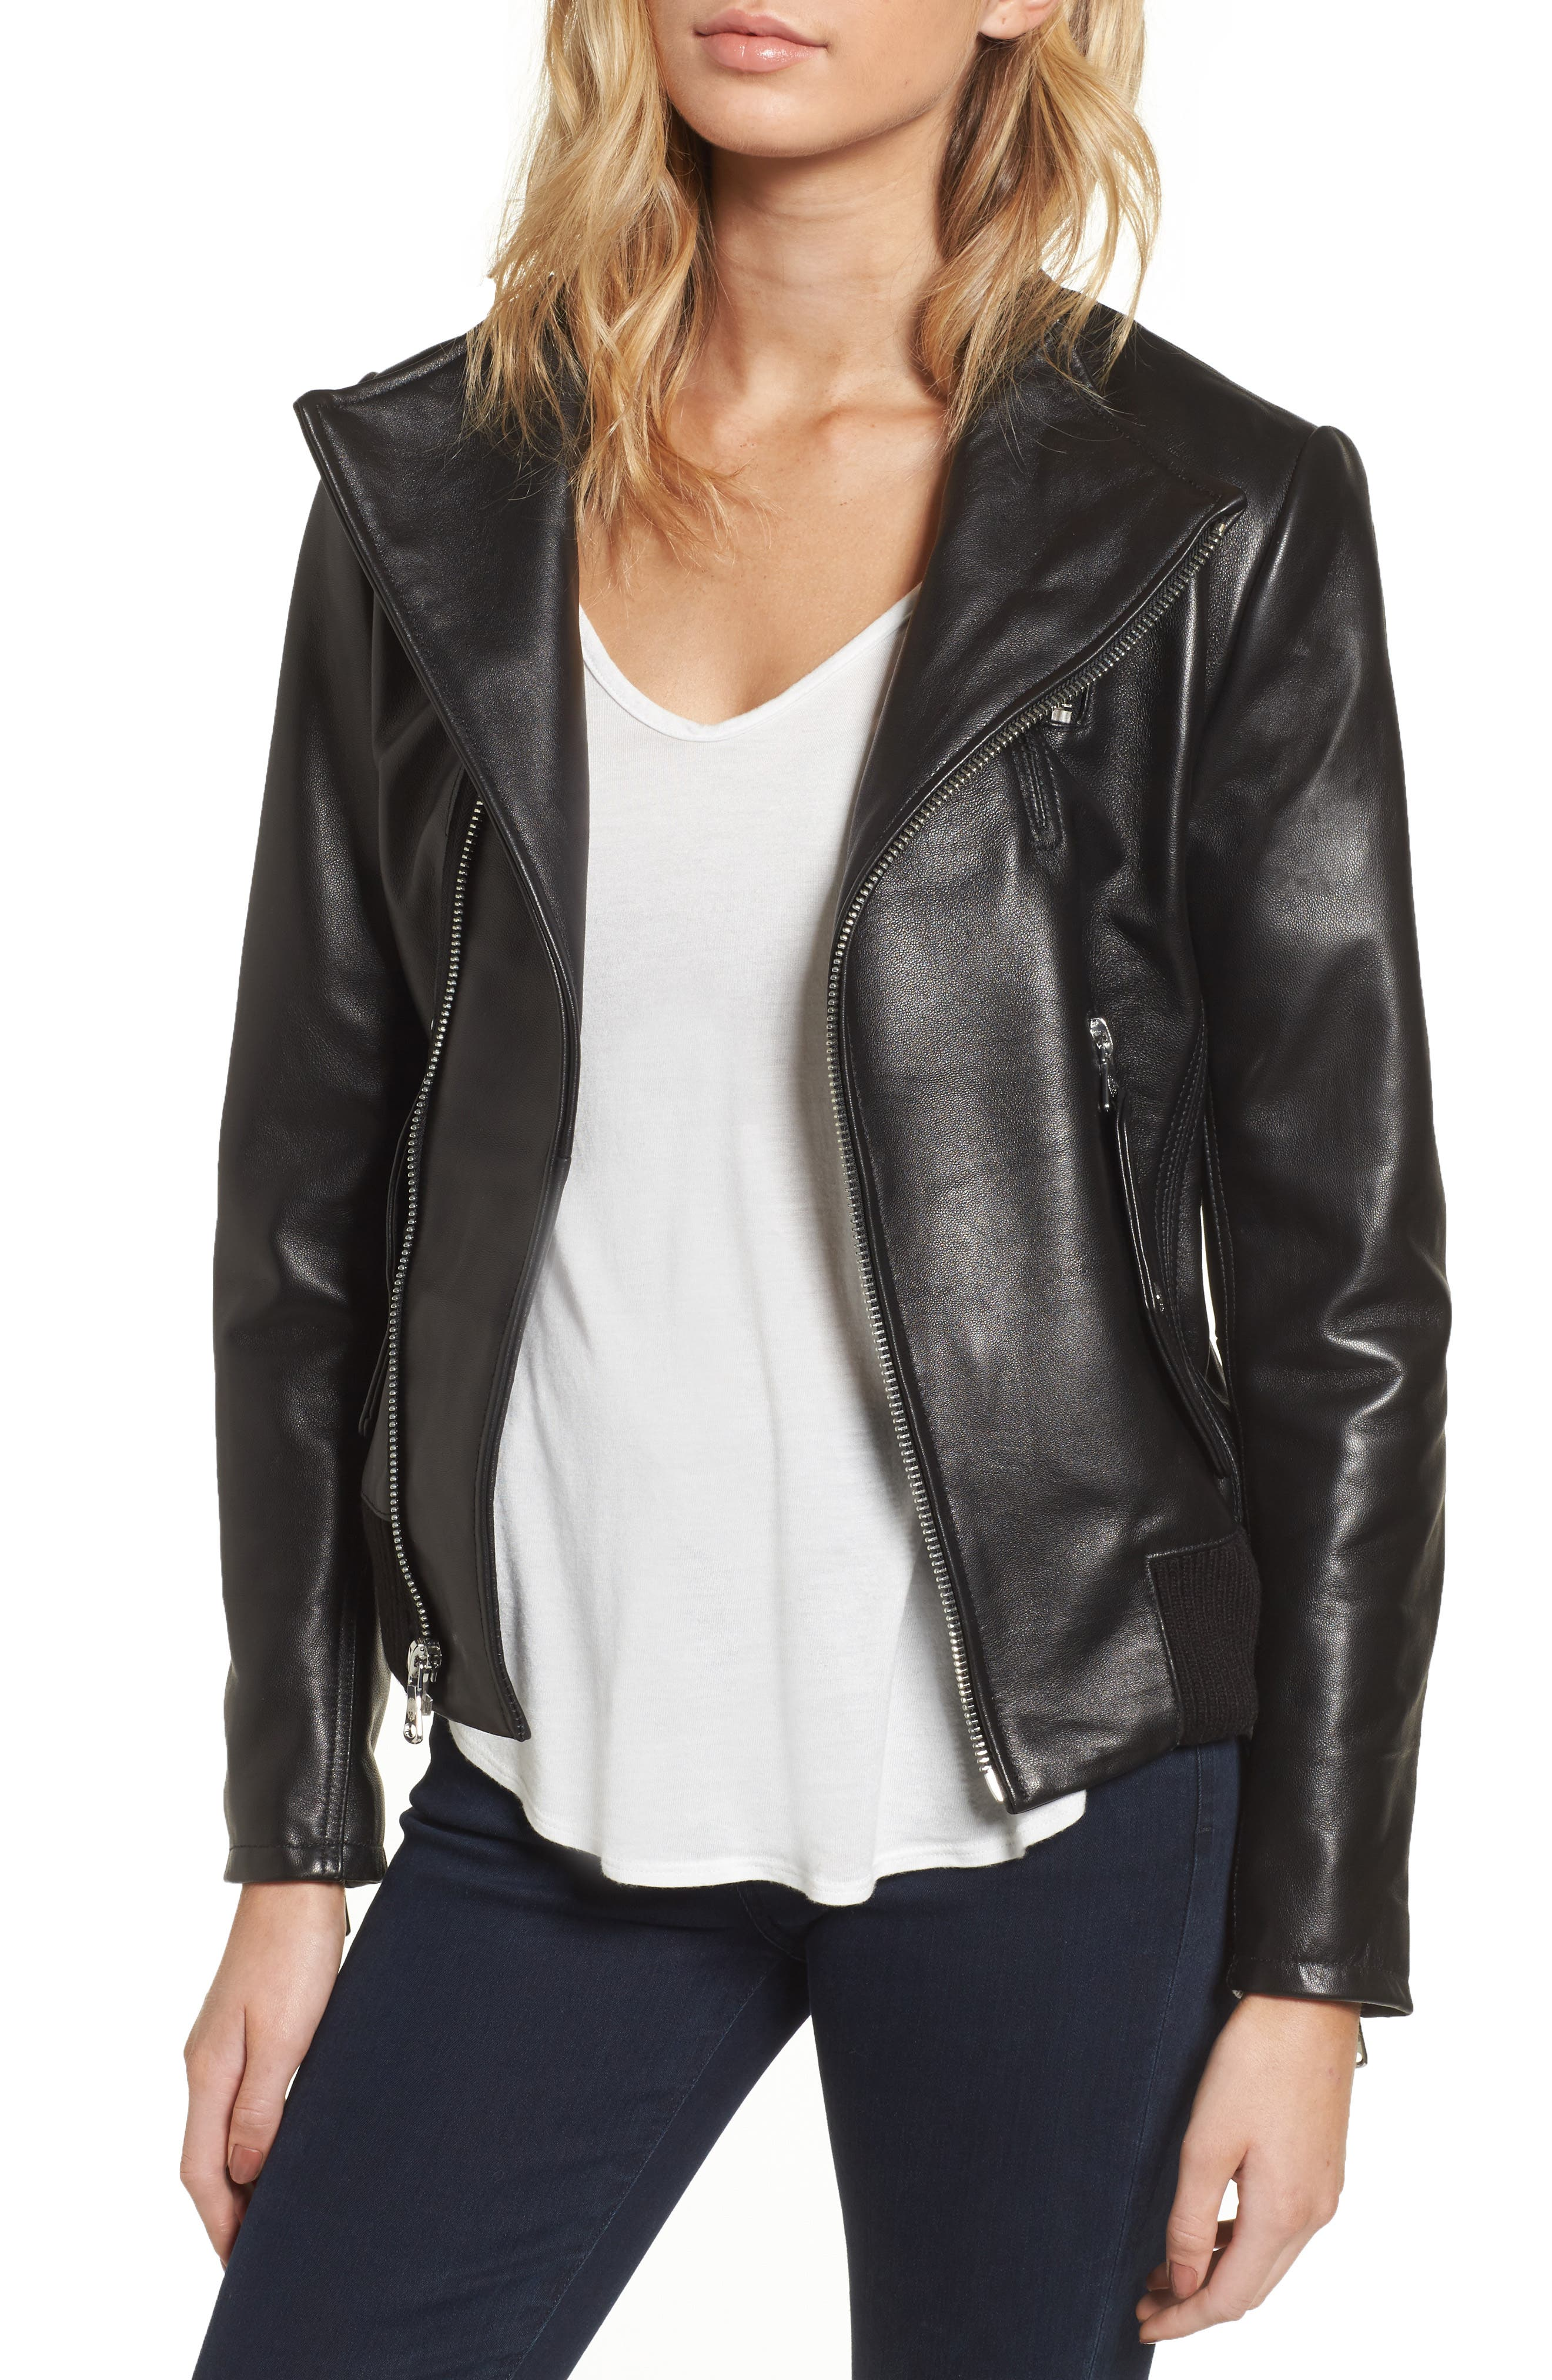 Alternate Image 1 Selected - Vince Camuto Leather Bomber Jacket